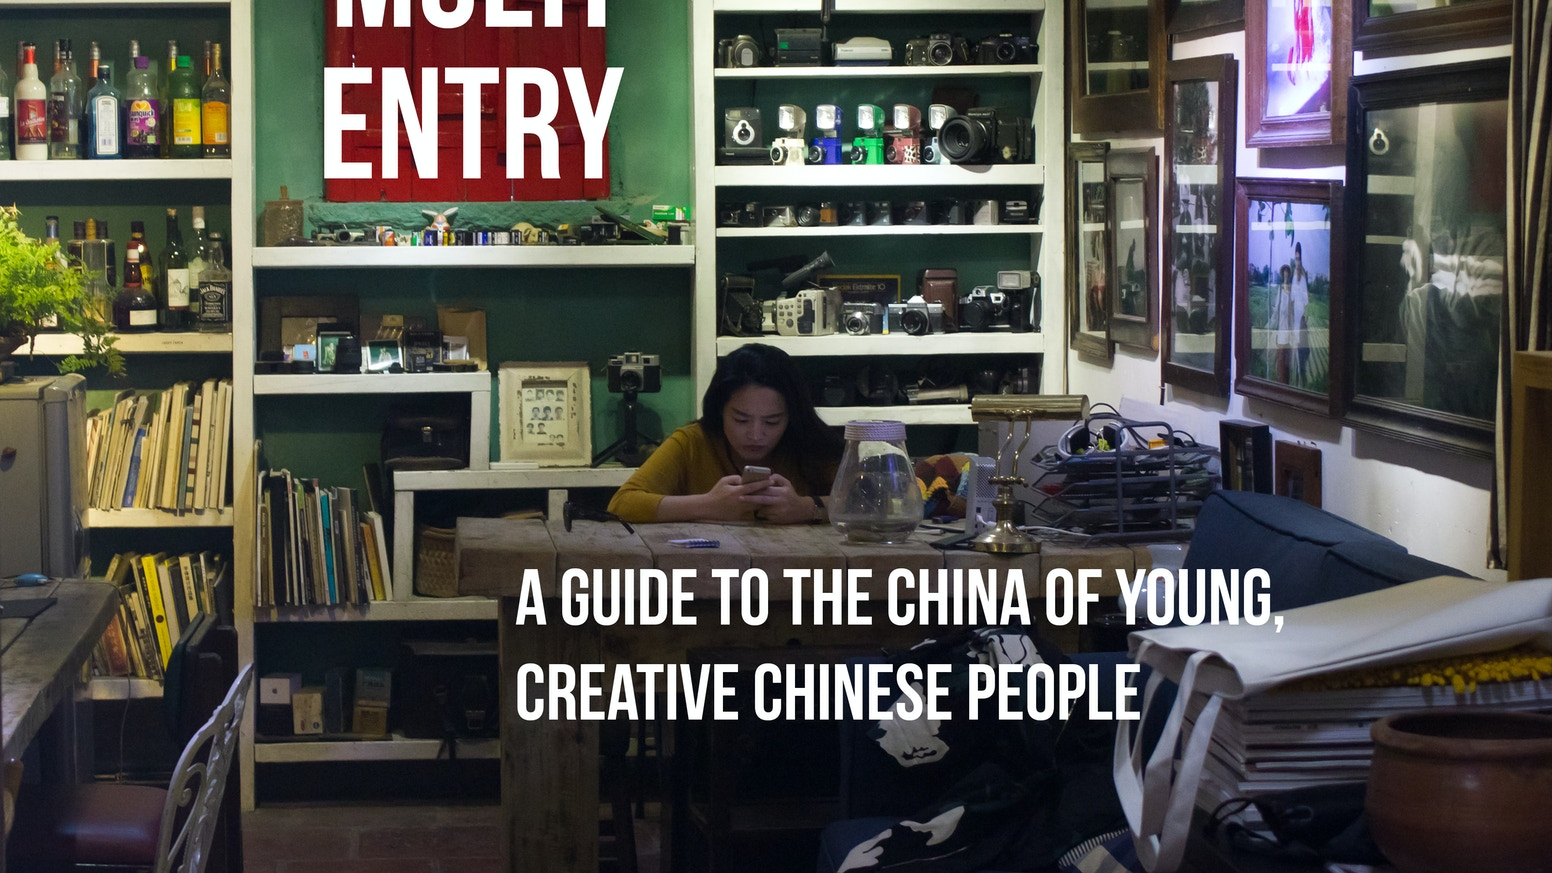 A multimedia collection of stories, interviews, and guides that vibrantly portrays the lives and worlds of young Chinese creatives.